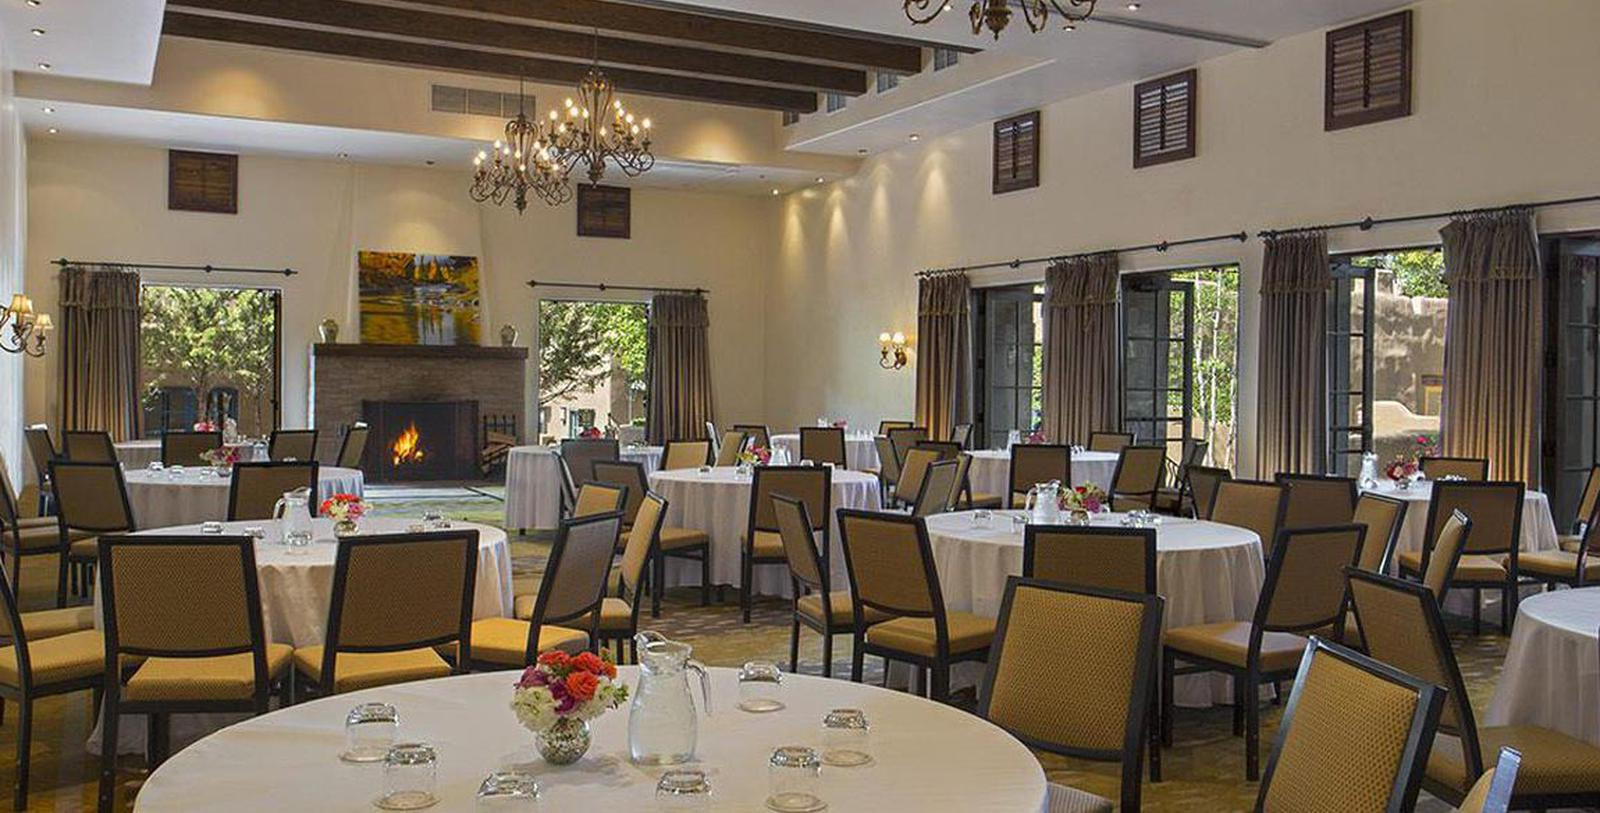 Image of event space La Posada de Santa Fe, 1882, A Tribute Portfolio Resort & Spa, Member of Historic Hotels of America, in Santa Fe, New Mexico, Experience